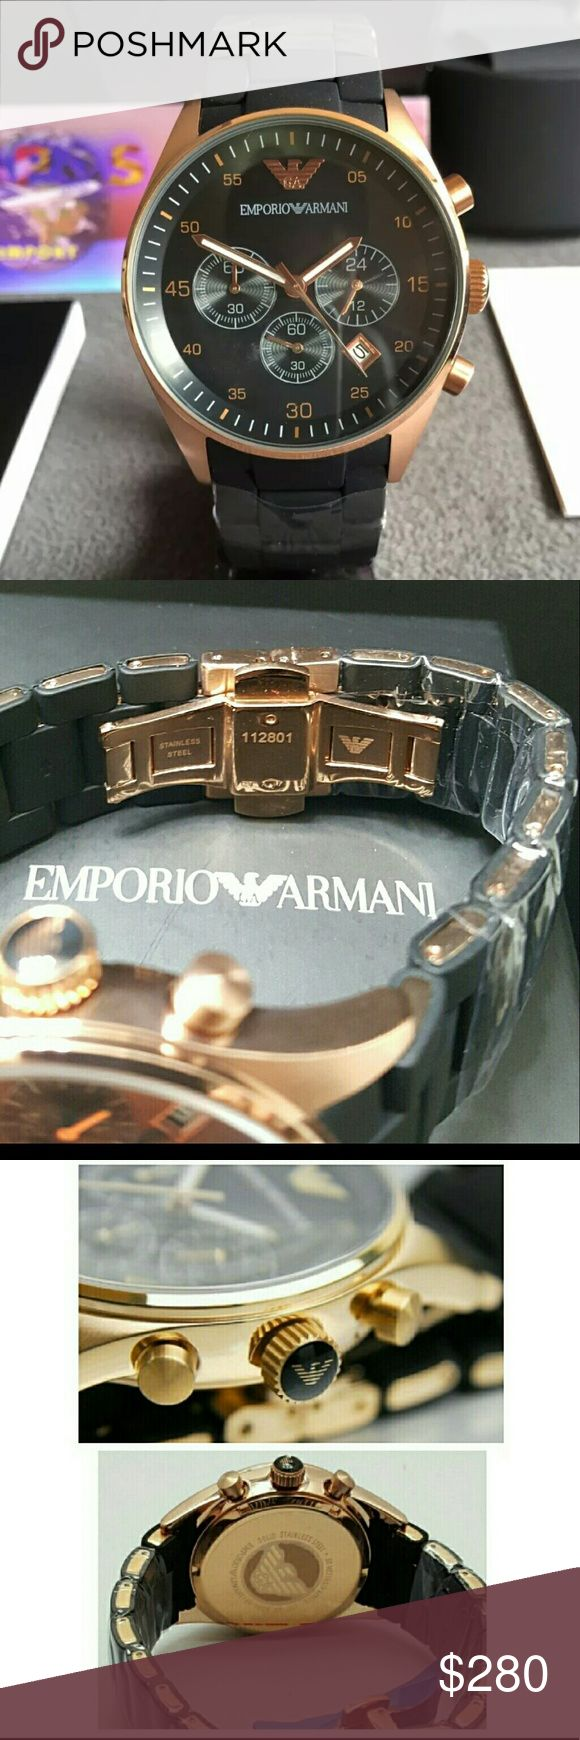 Emporio Armani Chronograph Rose Gold Black watch Emporio Armani Chronograph Rose Gold Black Men's Watch  FIRM PRICEFIRM PRICE FIRM PRICE FIRM PRICE  $280.00 . AUTHENTIC WATCH  . AUTHENTIC BOX  . AUTHENTIC MANUAL   SHIPPING  PLEASE ALLOW 3-4 BUSINESS DAYS FOR ME TO SHIPPED IT OFF.I HAVE TO GET IT FROM MY STORE.  THANK YOU FOR YOUR UNDERSTANDING emporio Armani Accessories Watches